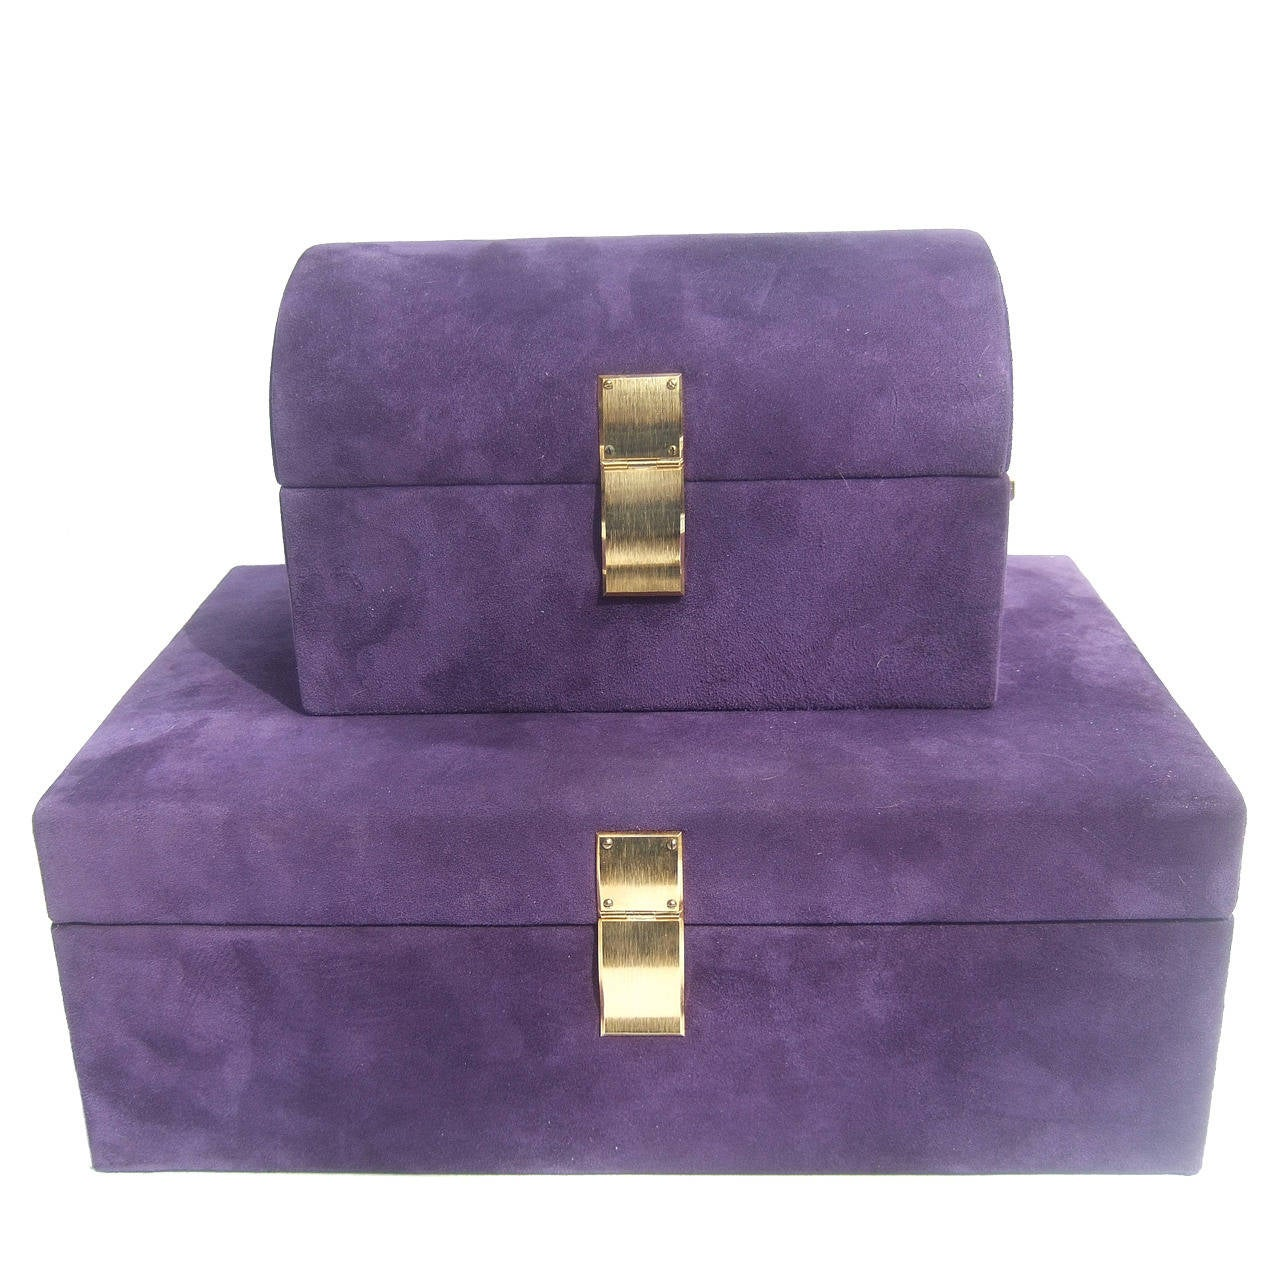 Neiman Marcus Set Of Violet Suede Jewelry Boxes Made In